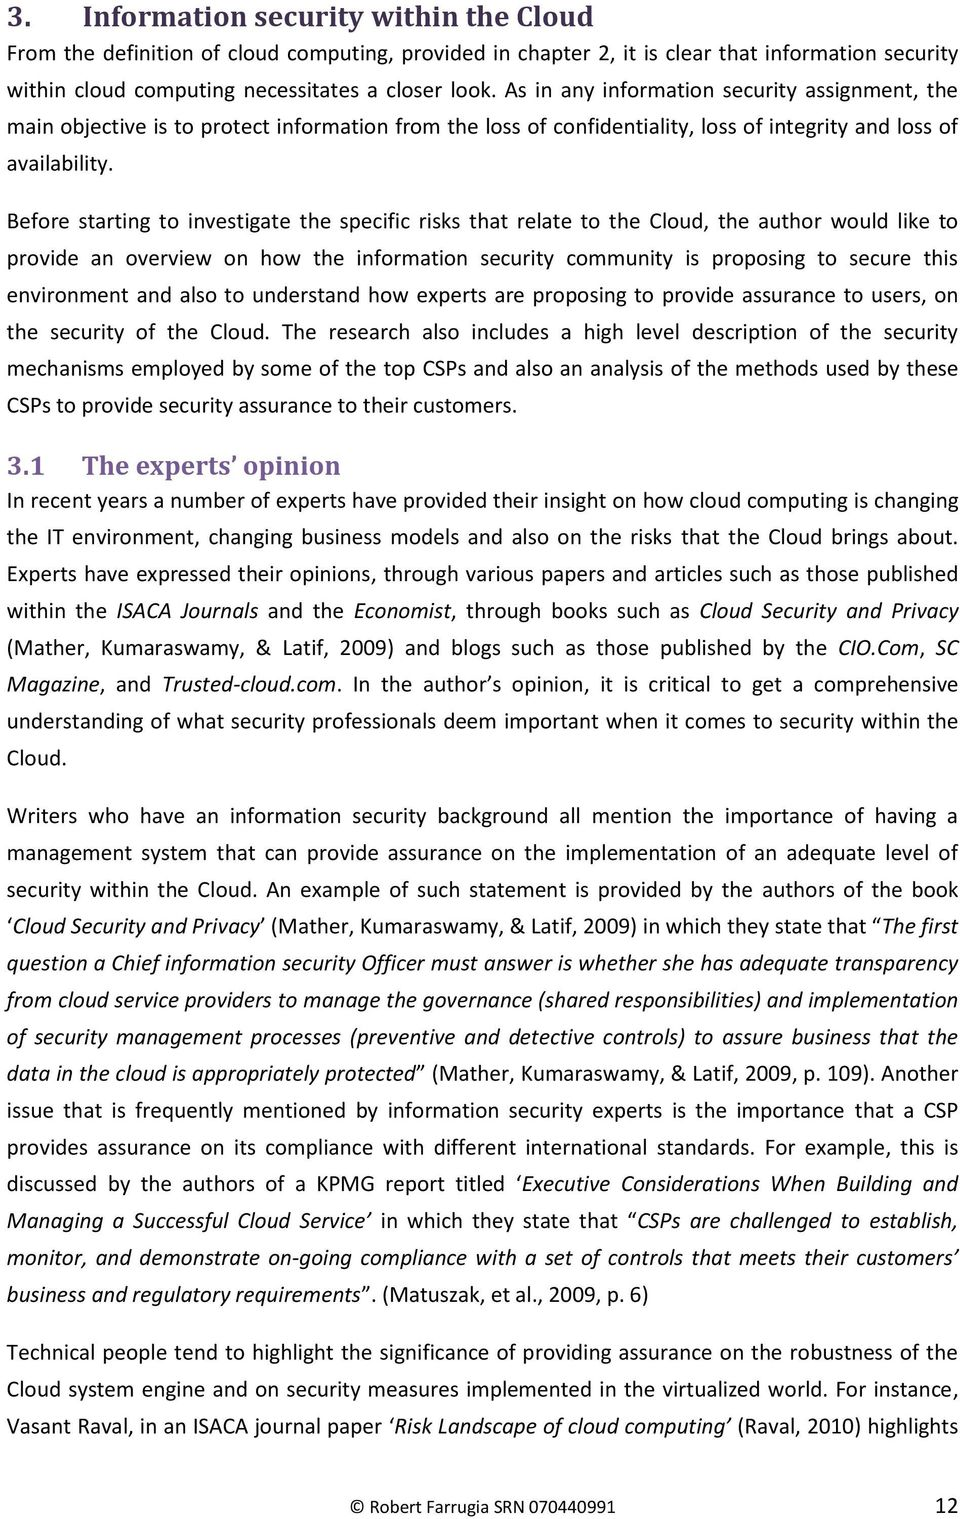 Before starting to investigate the specific risks that relate to the Cloud, the author would like to provide an overview on how the information security community is proposing to secure this